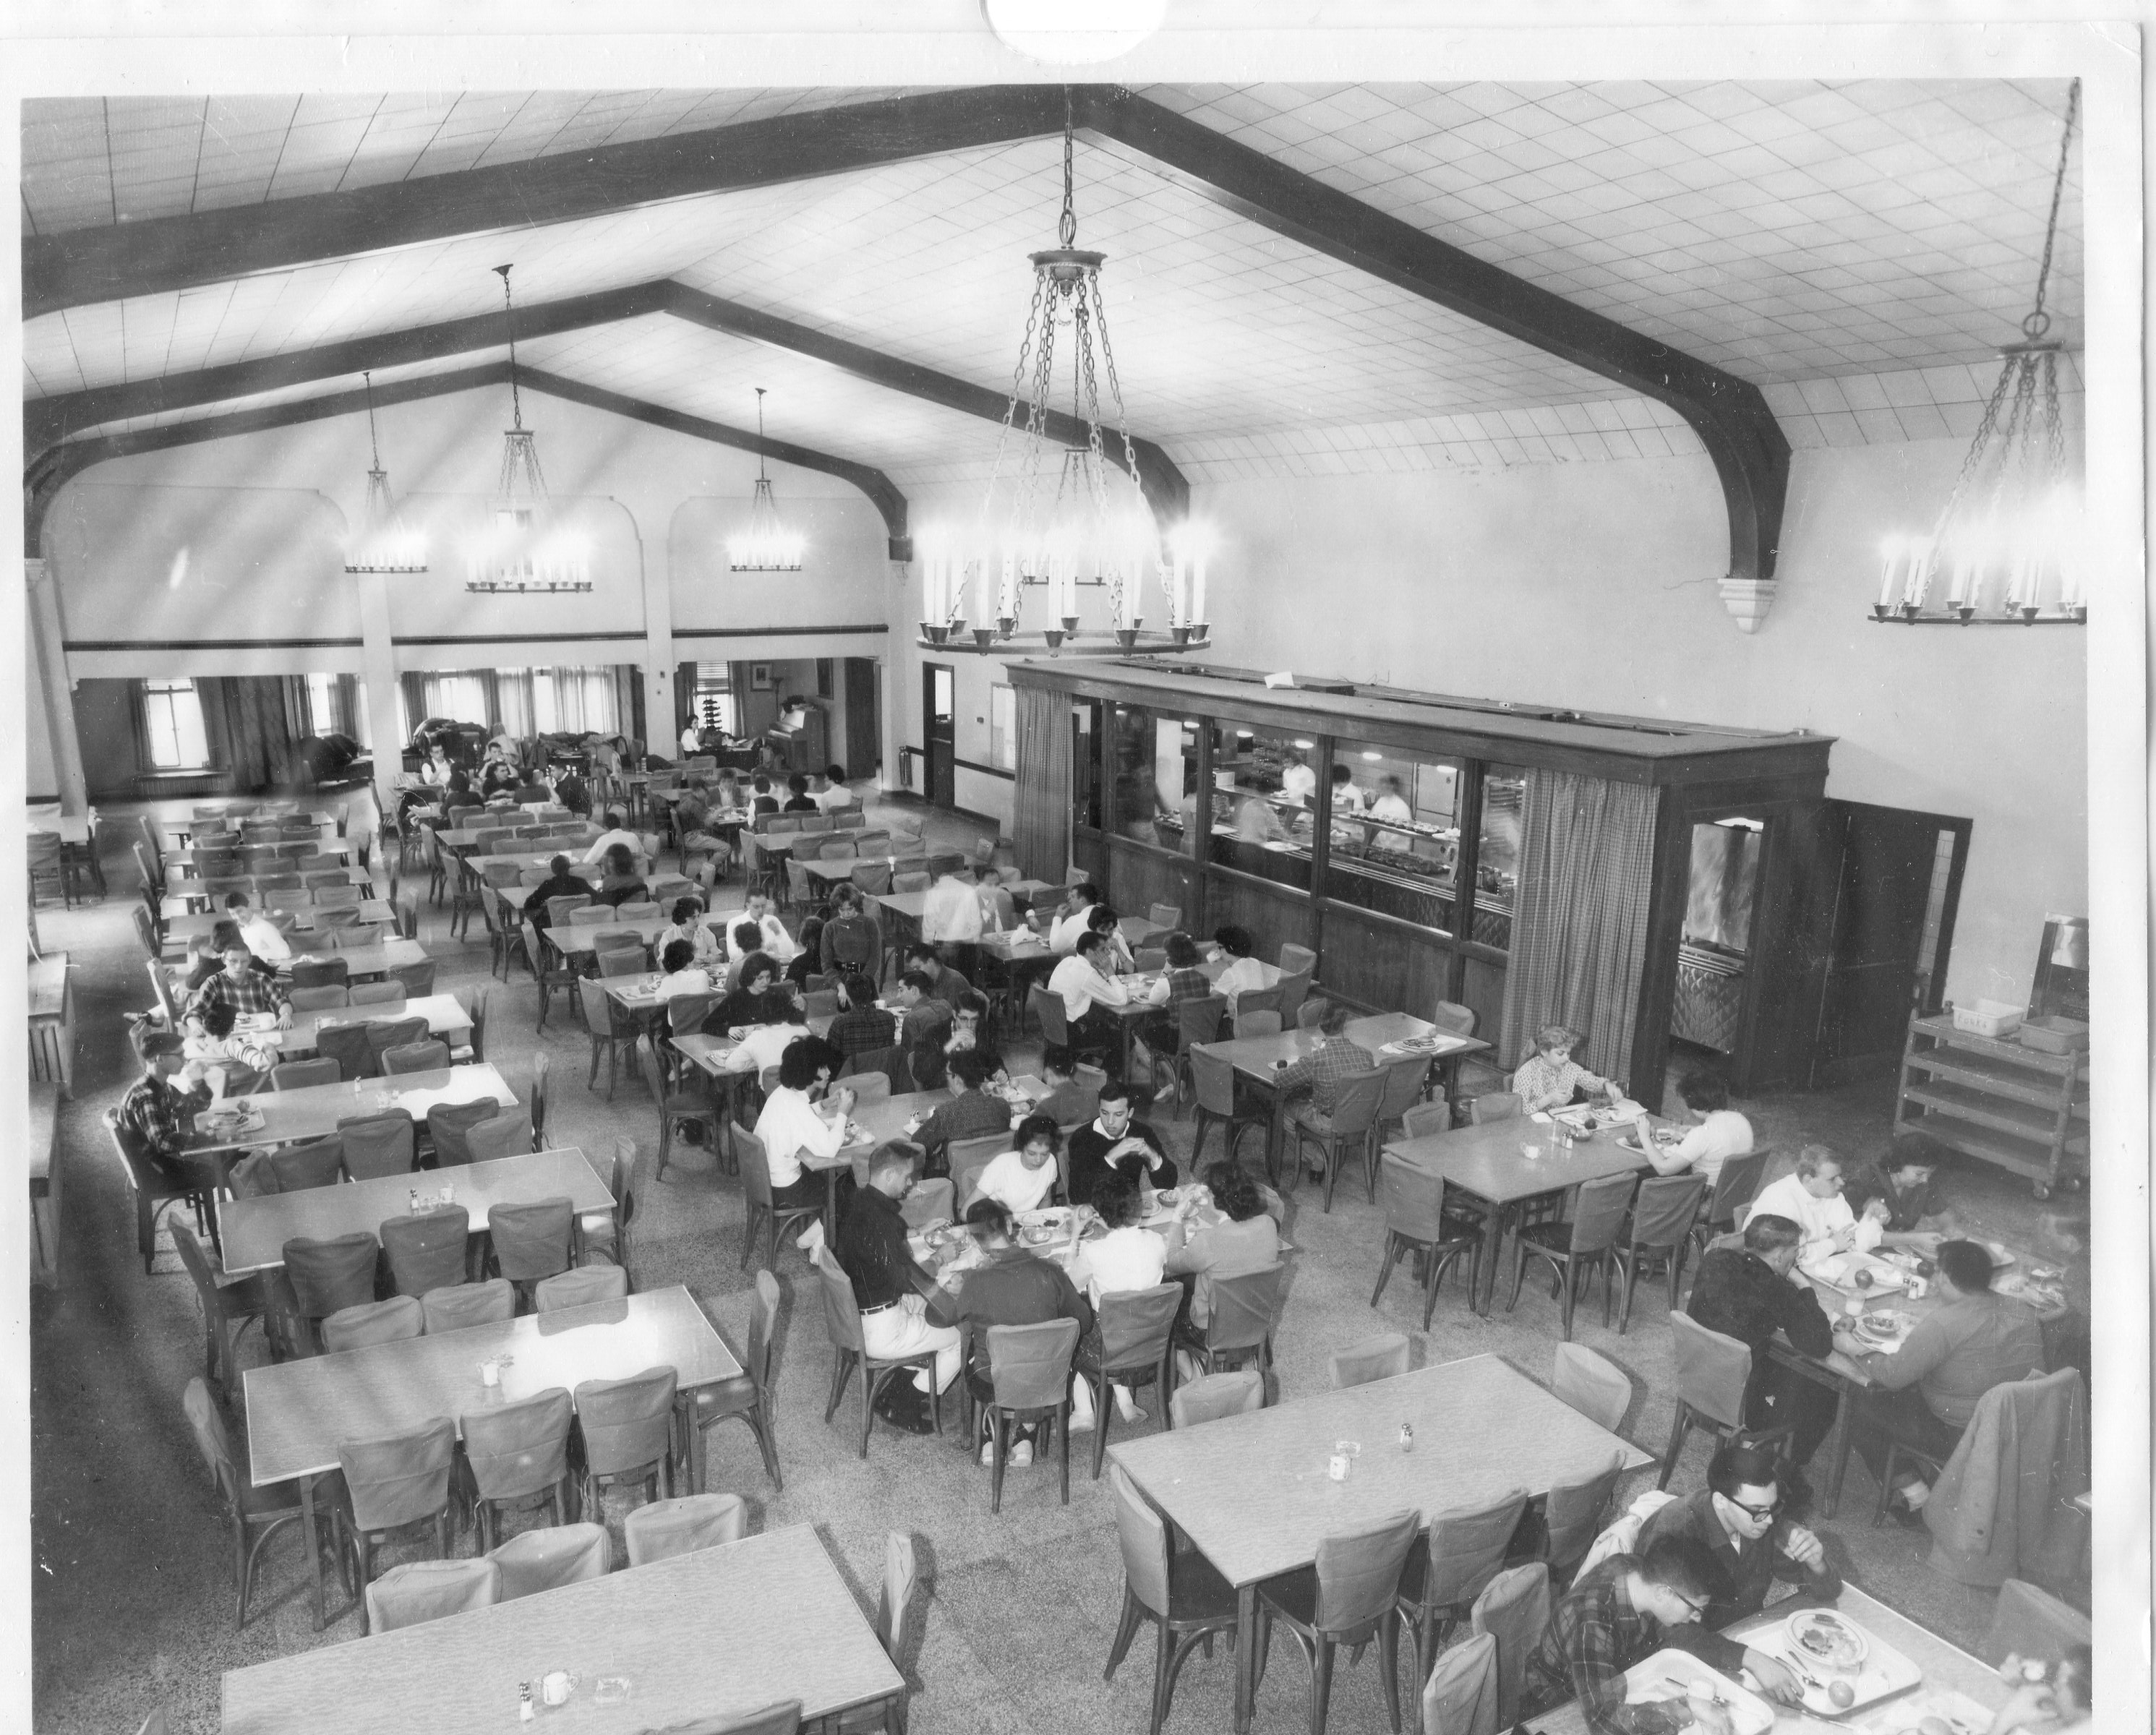 The dining area after it was converted into a cafeteria